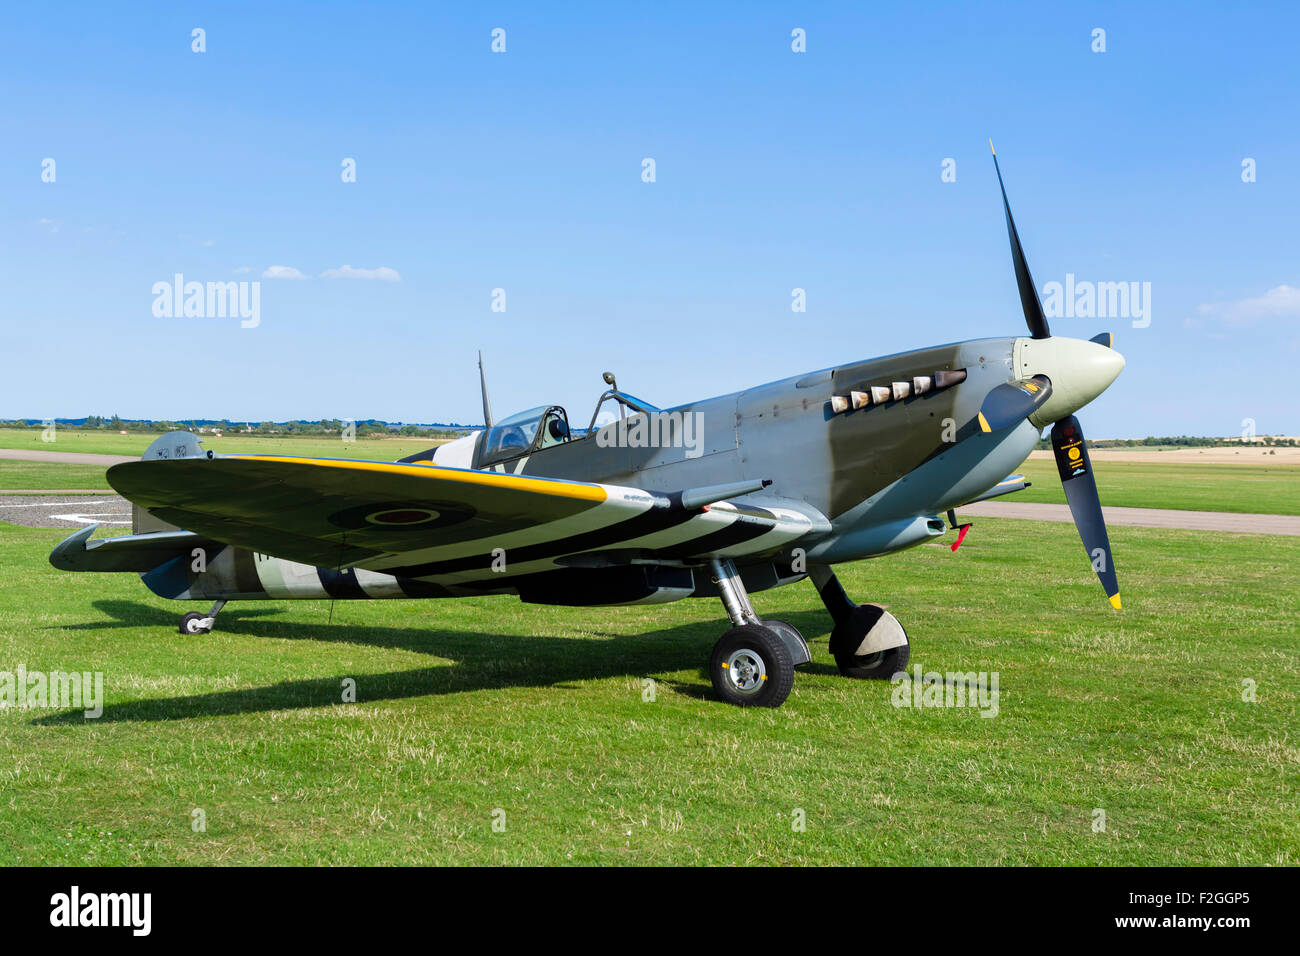 Supermarine Spitfire on the airfield at the Imperial War Museum, Duxford, Cambridgeshire, England, UK - Stock Image